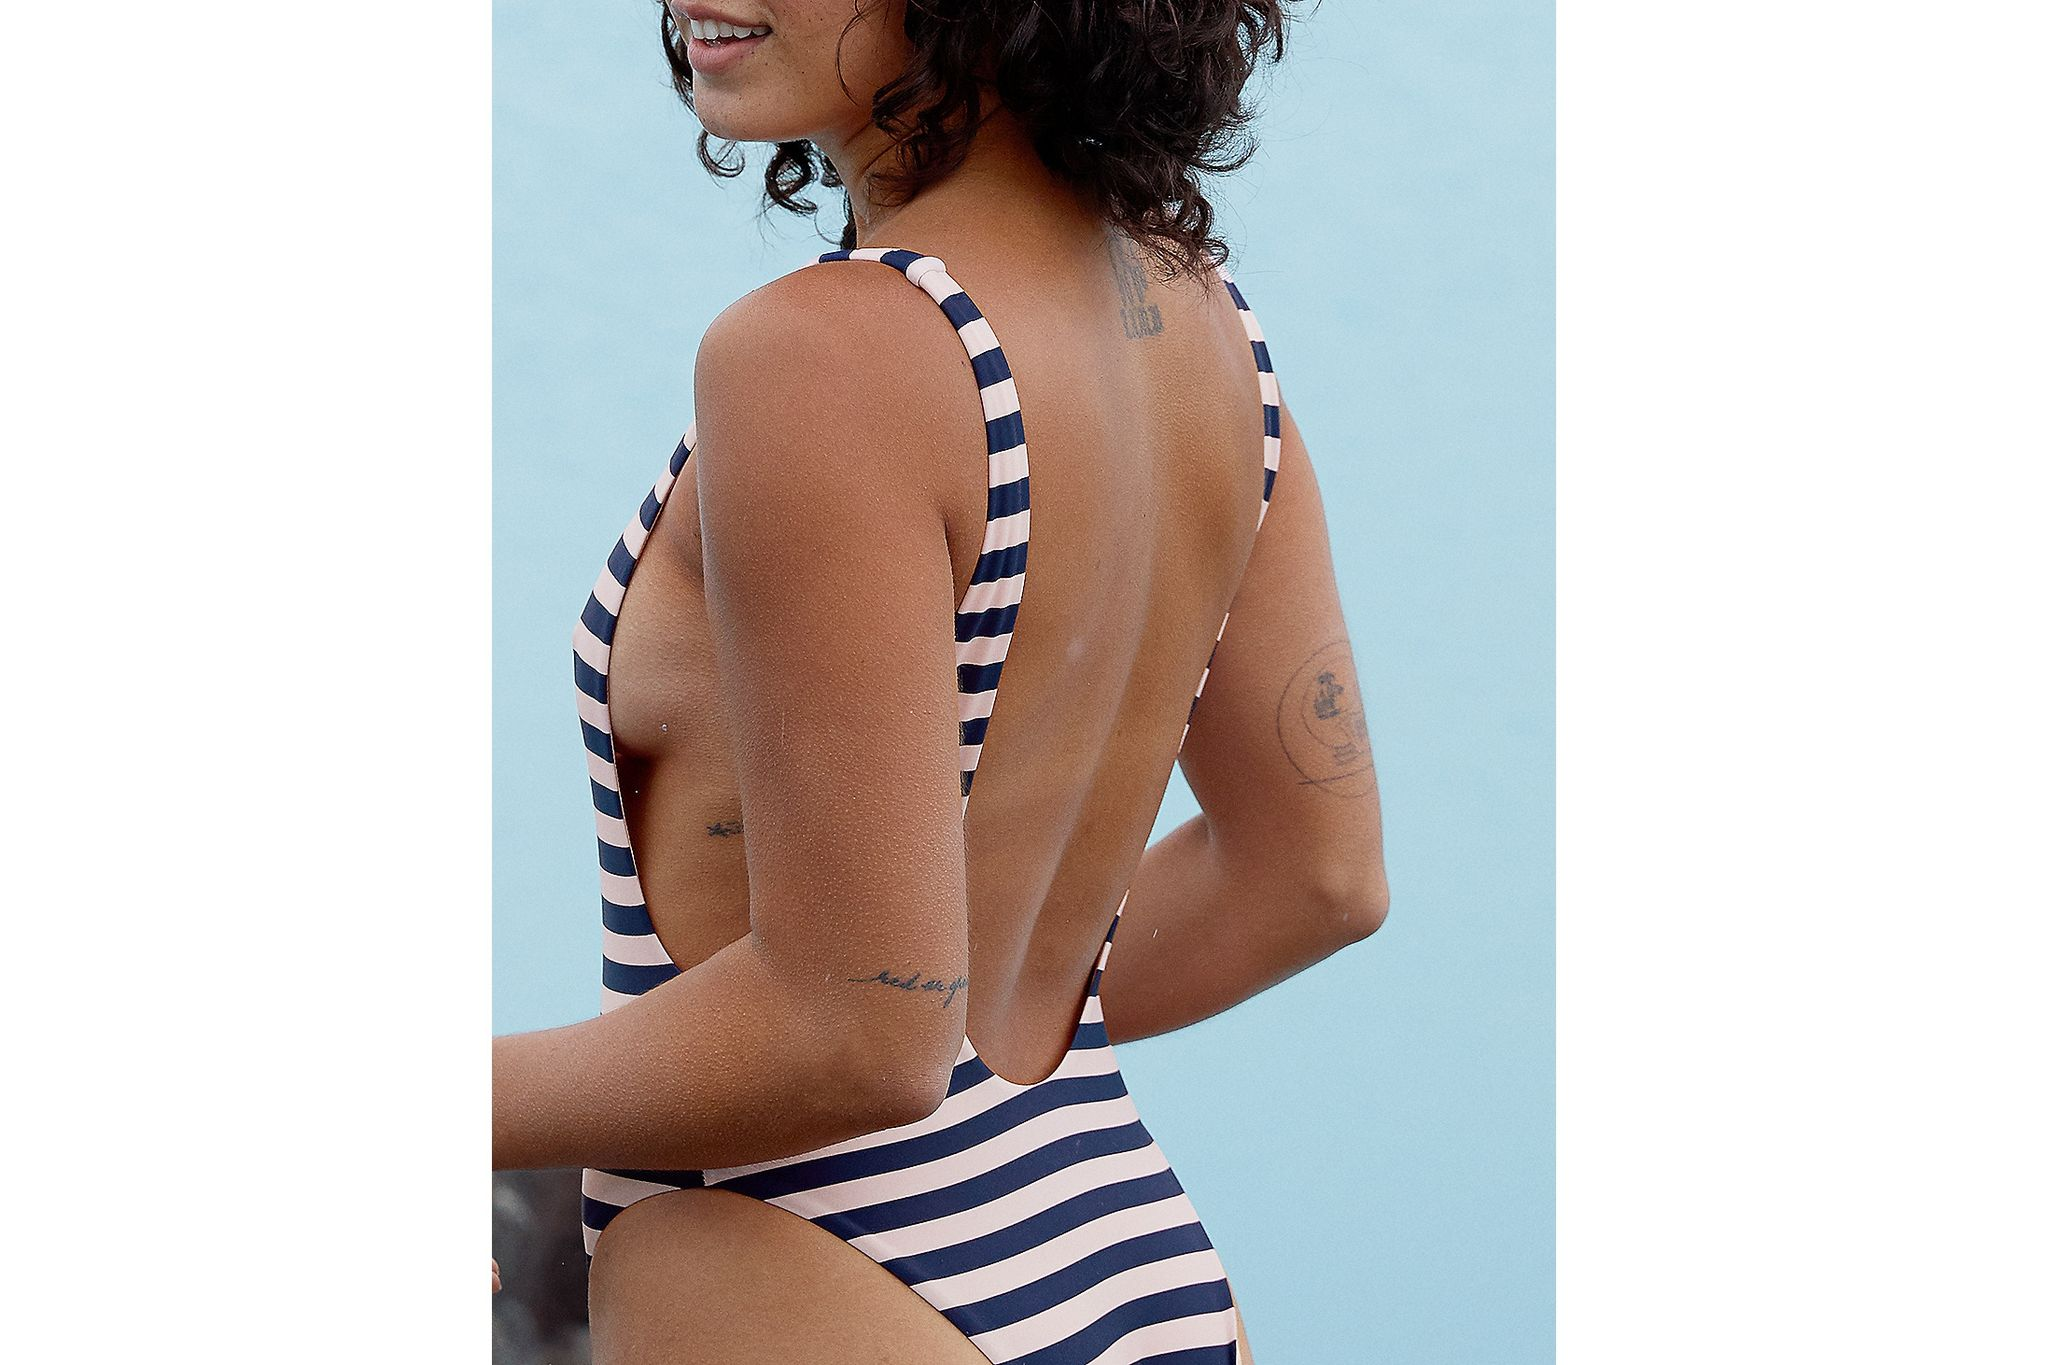 550bdfdd9d5 American Eagle Aerie Super Scoop One Piece Swimsuit Price in Egypt ...